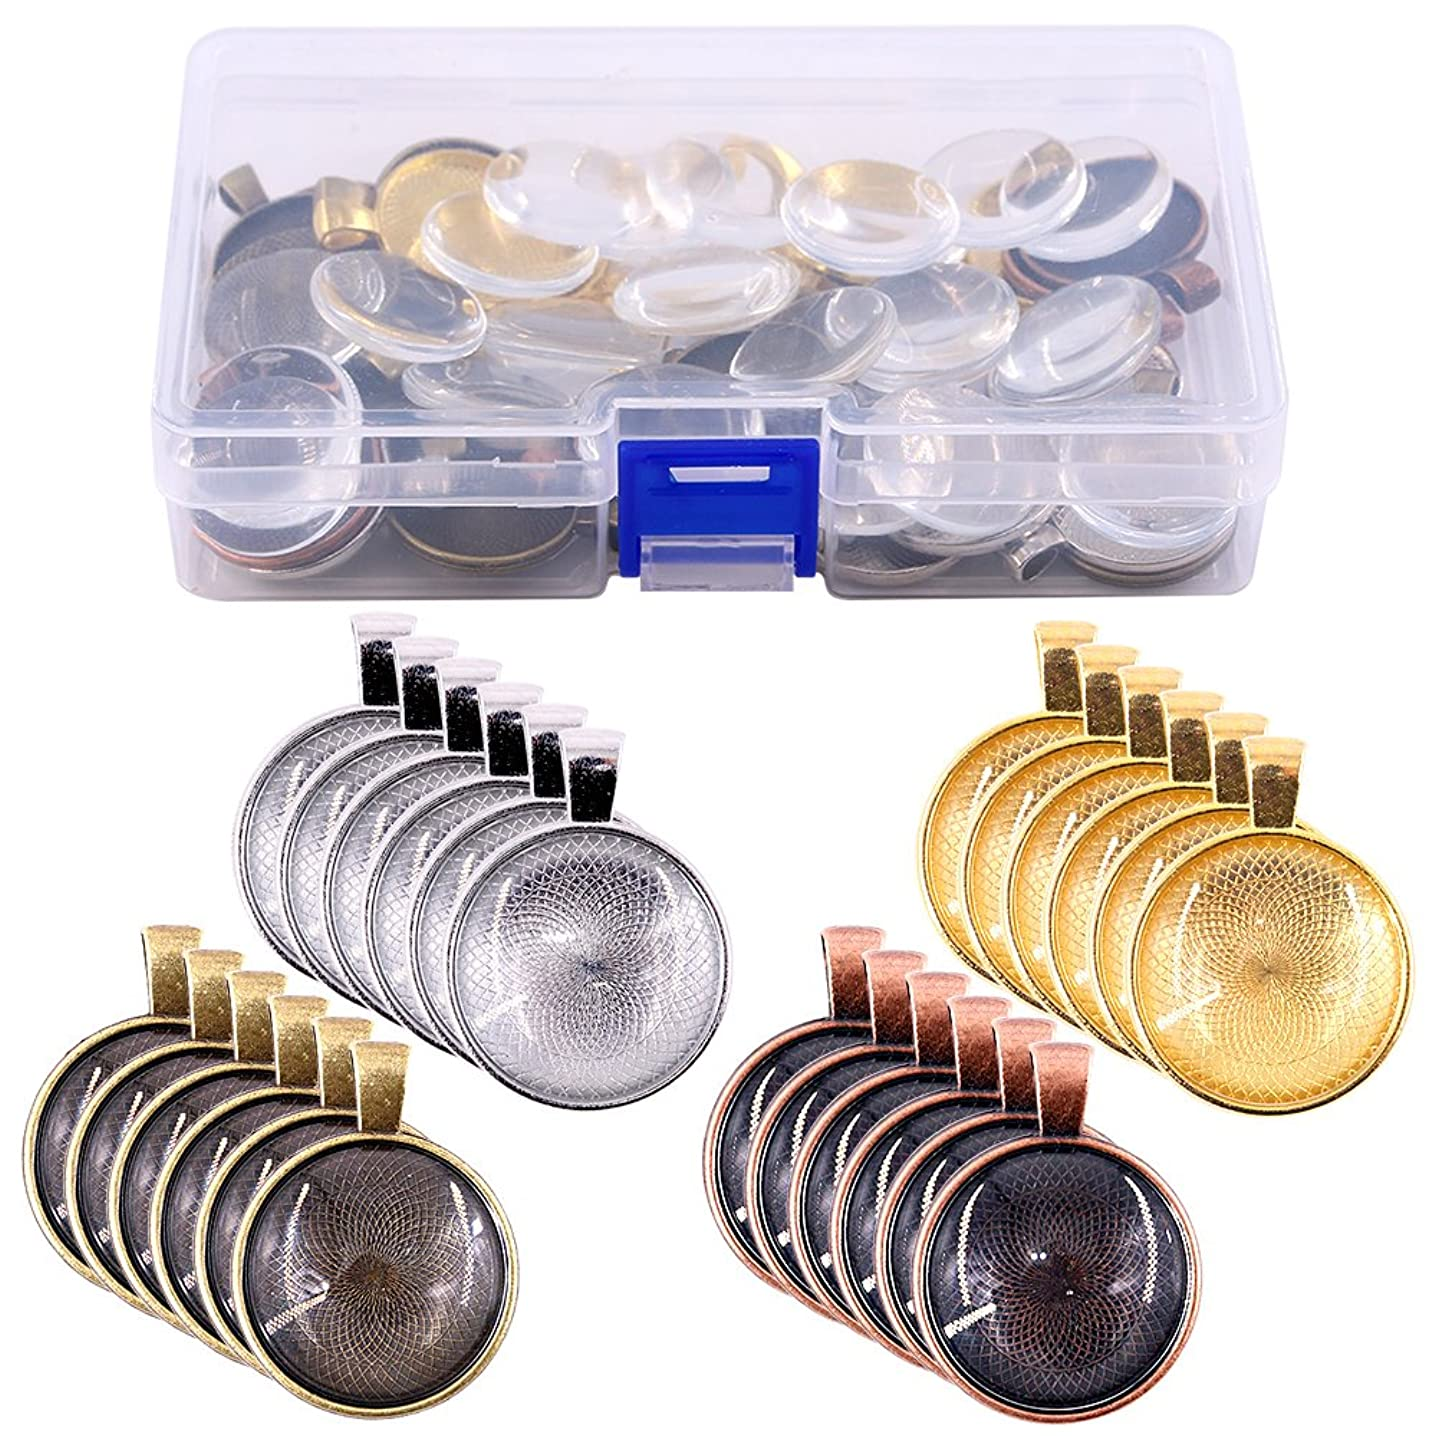 Glarks 56Pcs 4 Colors Pendant Trays Round Bezel with Glass Cabochon Round Clear Dome Tiles for Crafting DIY Jewelry Making